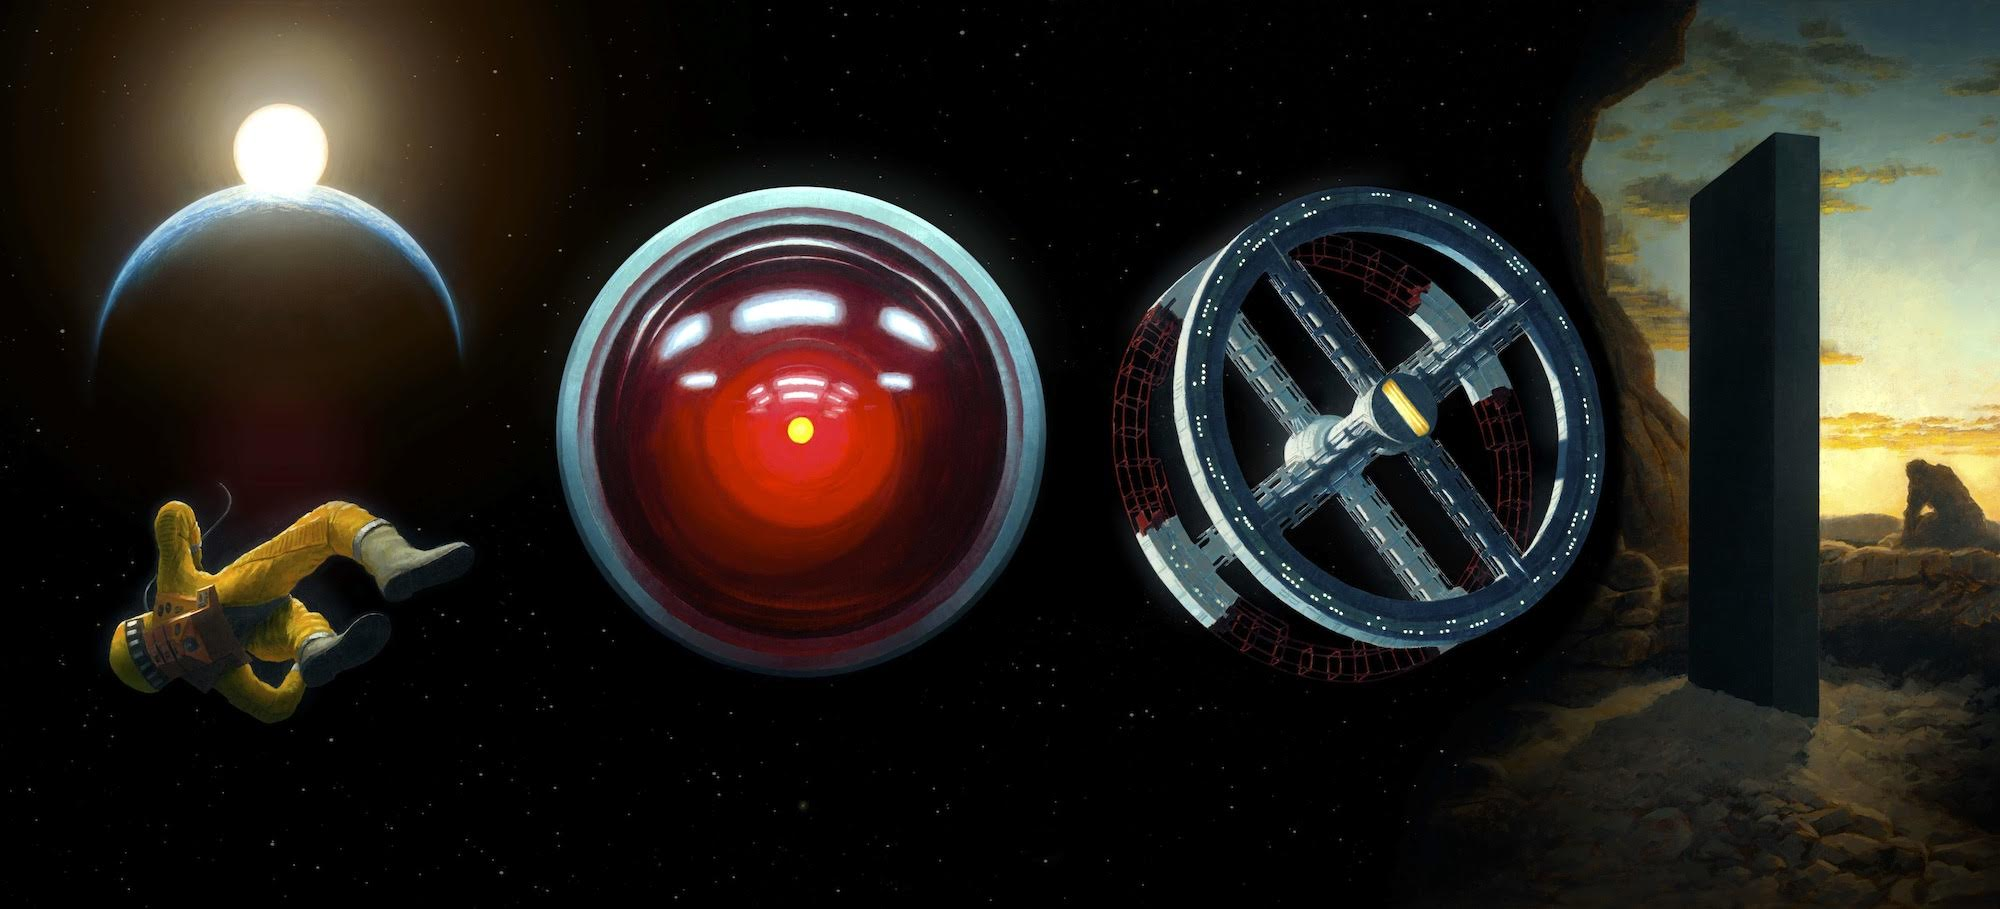 a critical analysis of the movie space odyssey